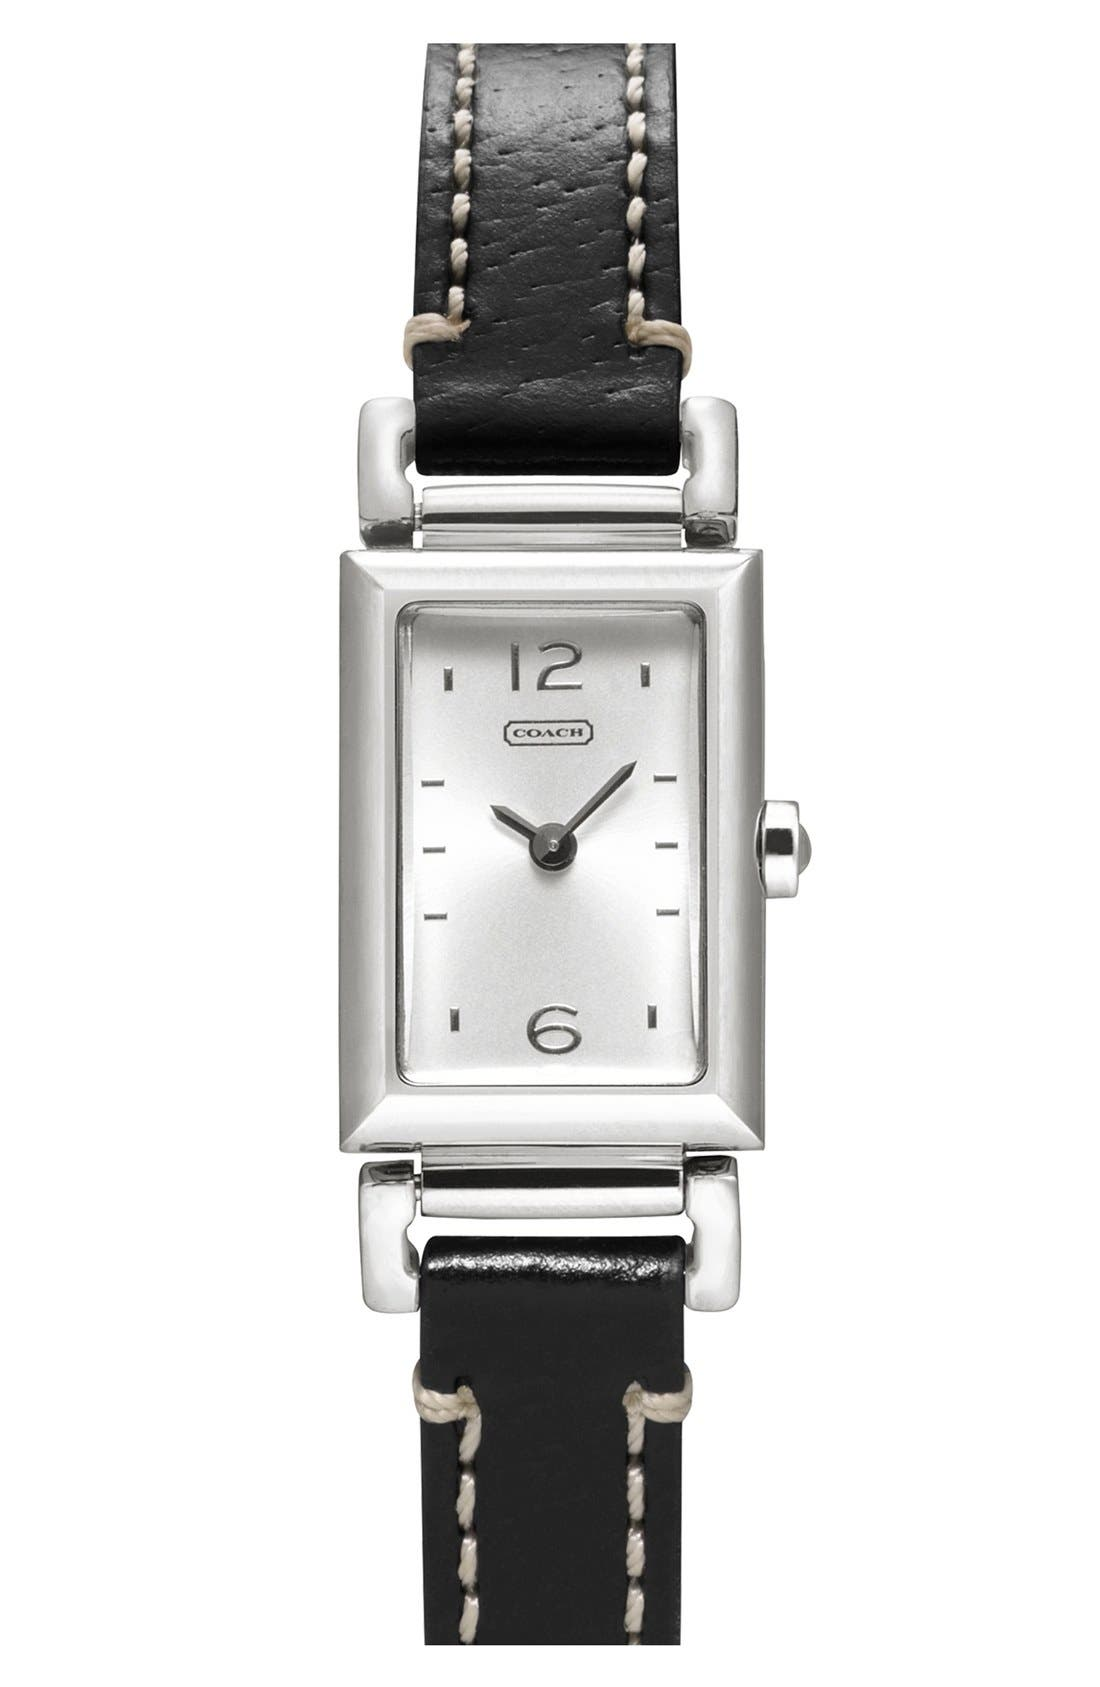 Main Image - COACH 'Small Madison' Leather Strap Watch, 11mm x 17mm